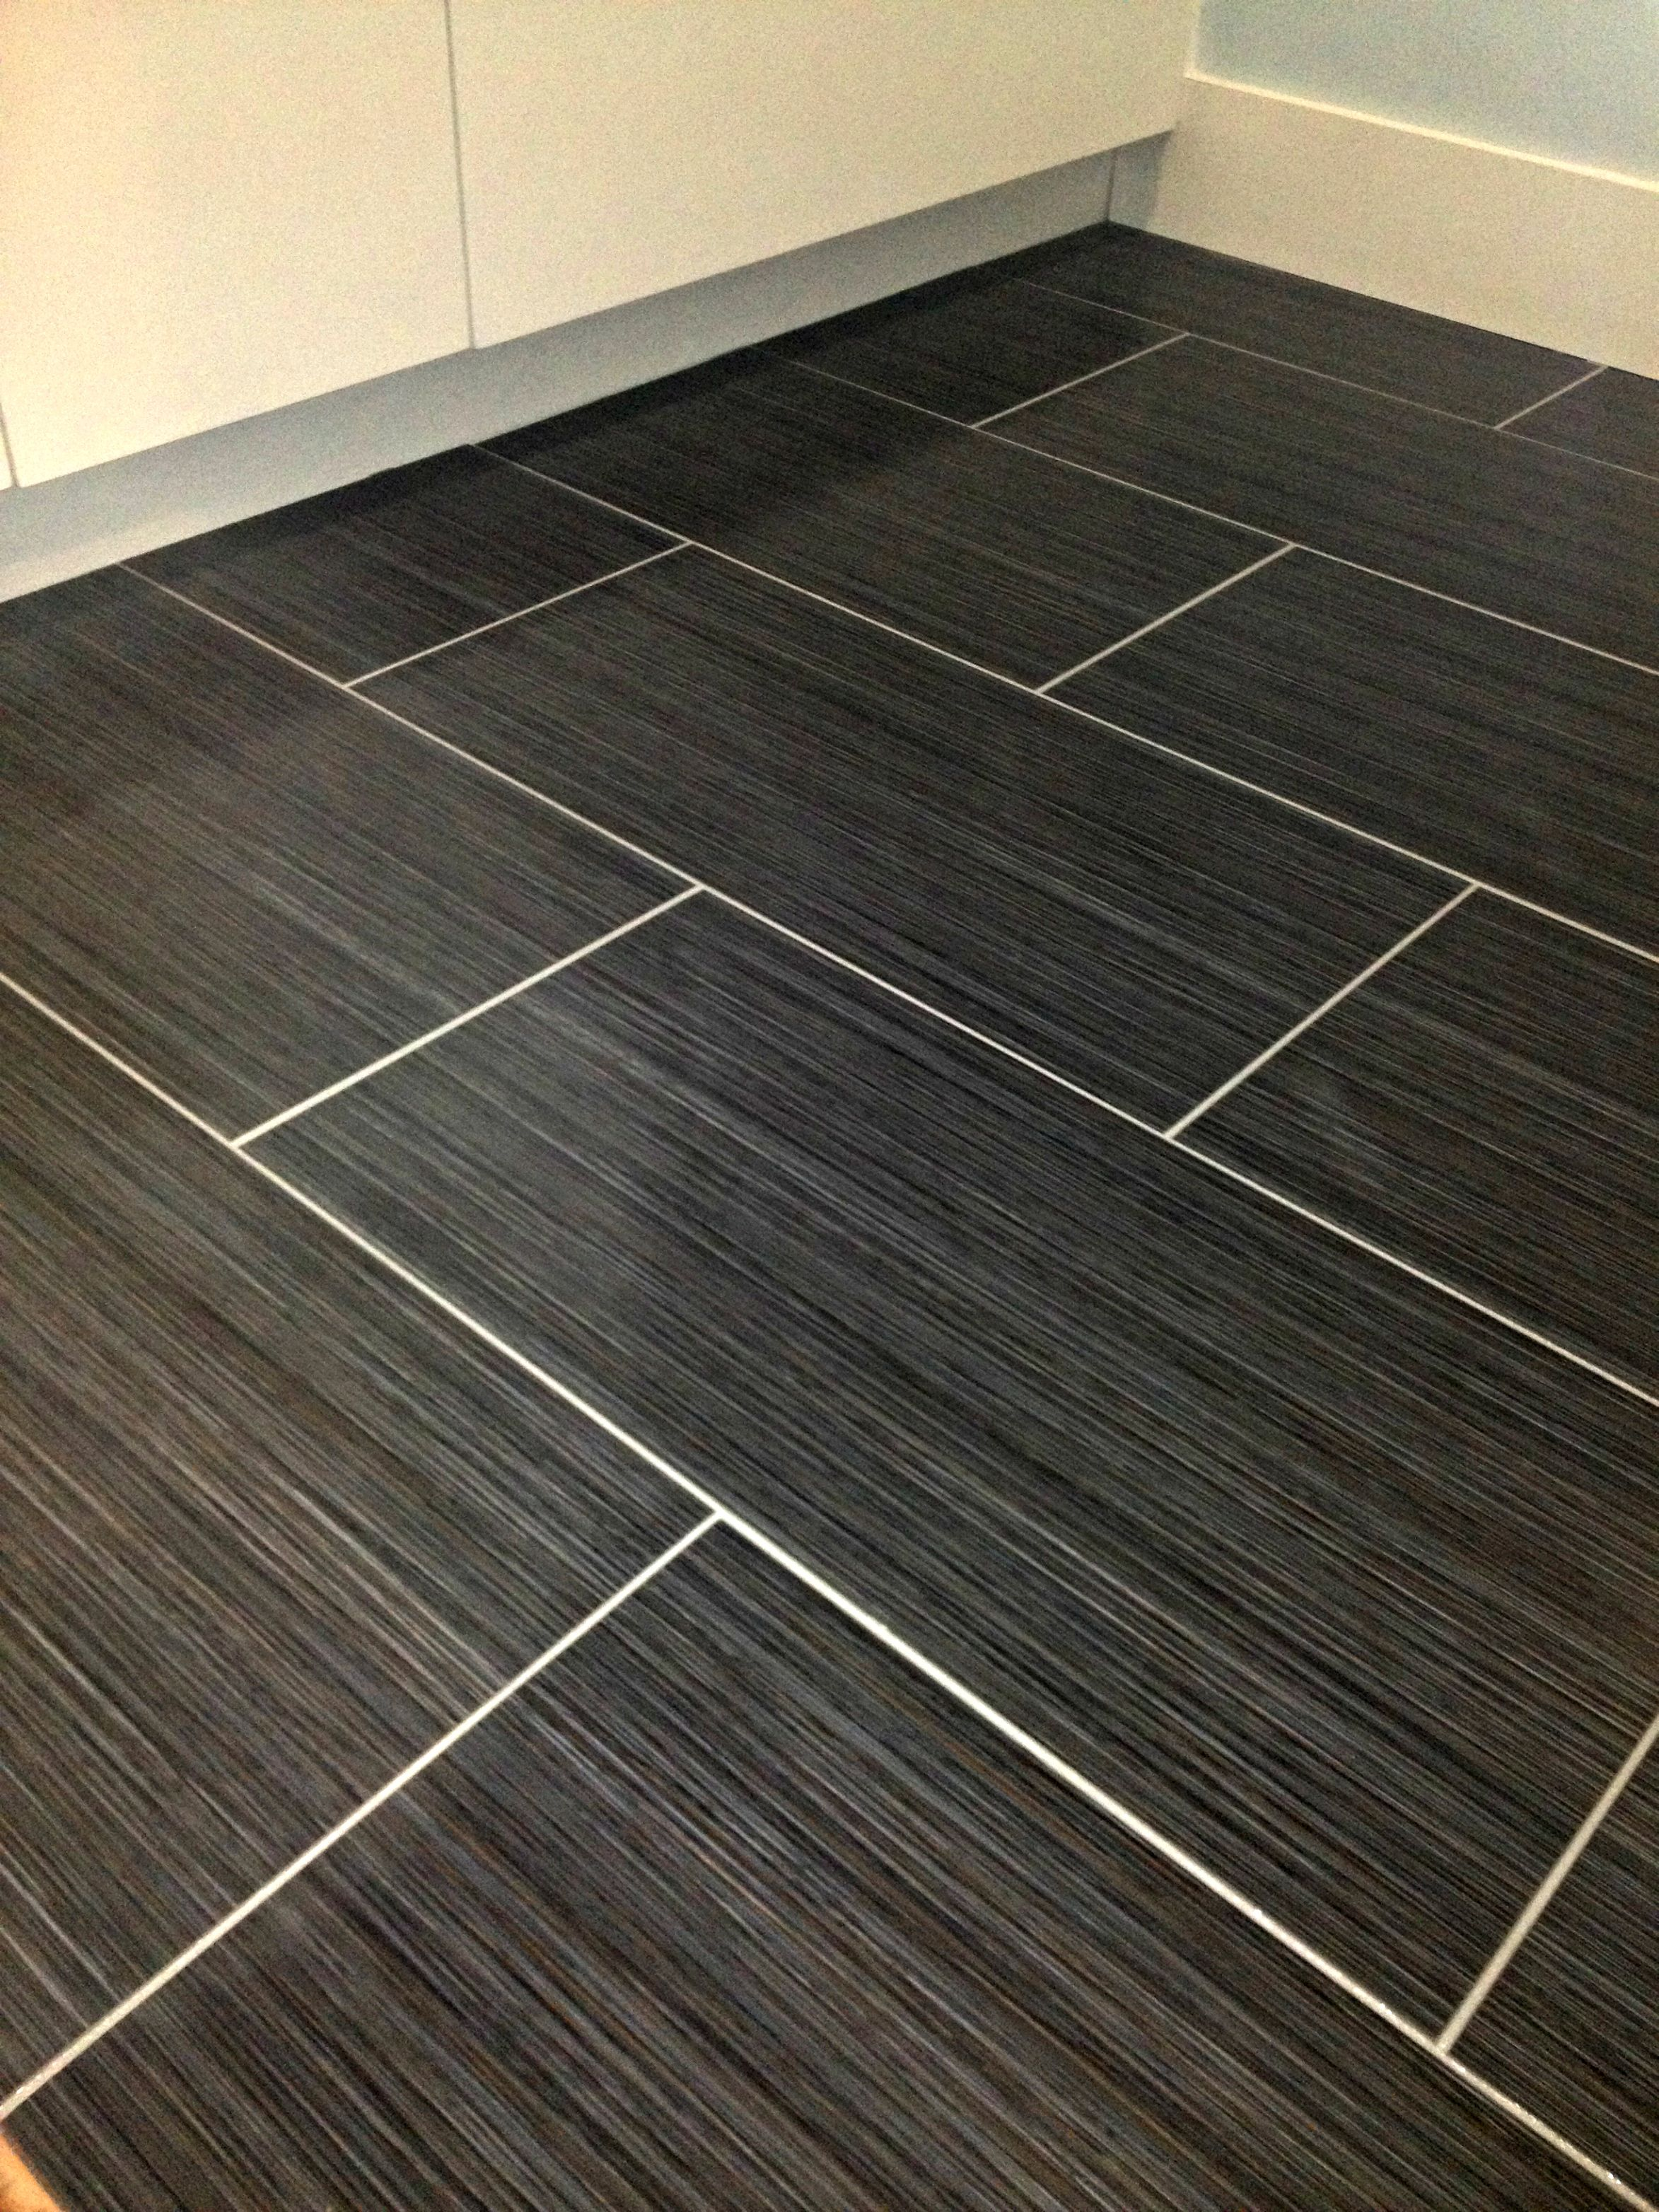 Dark Tile Flooring Amazing Floor With Dark Tile And Light Grout Our Work  Tile Decorating Inspiration